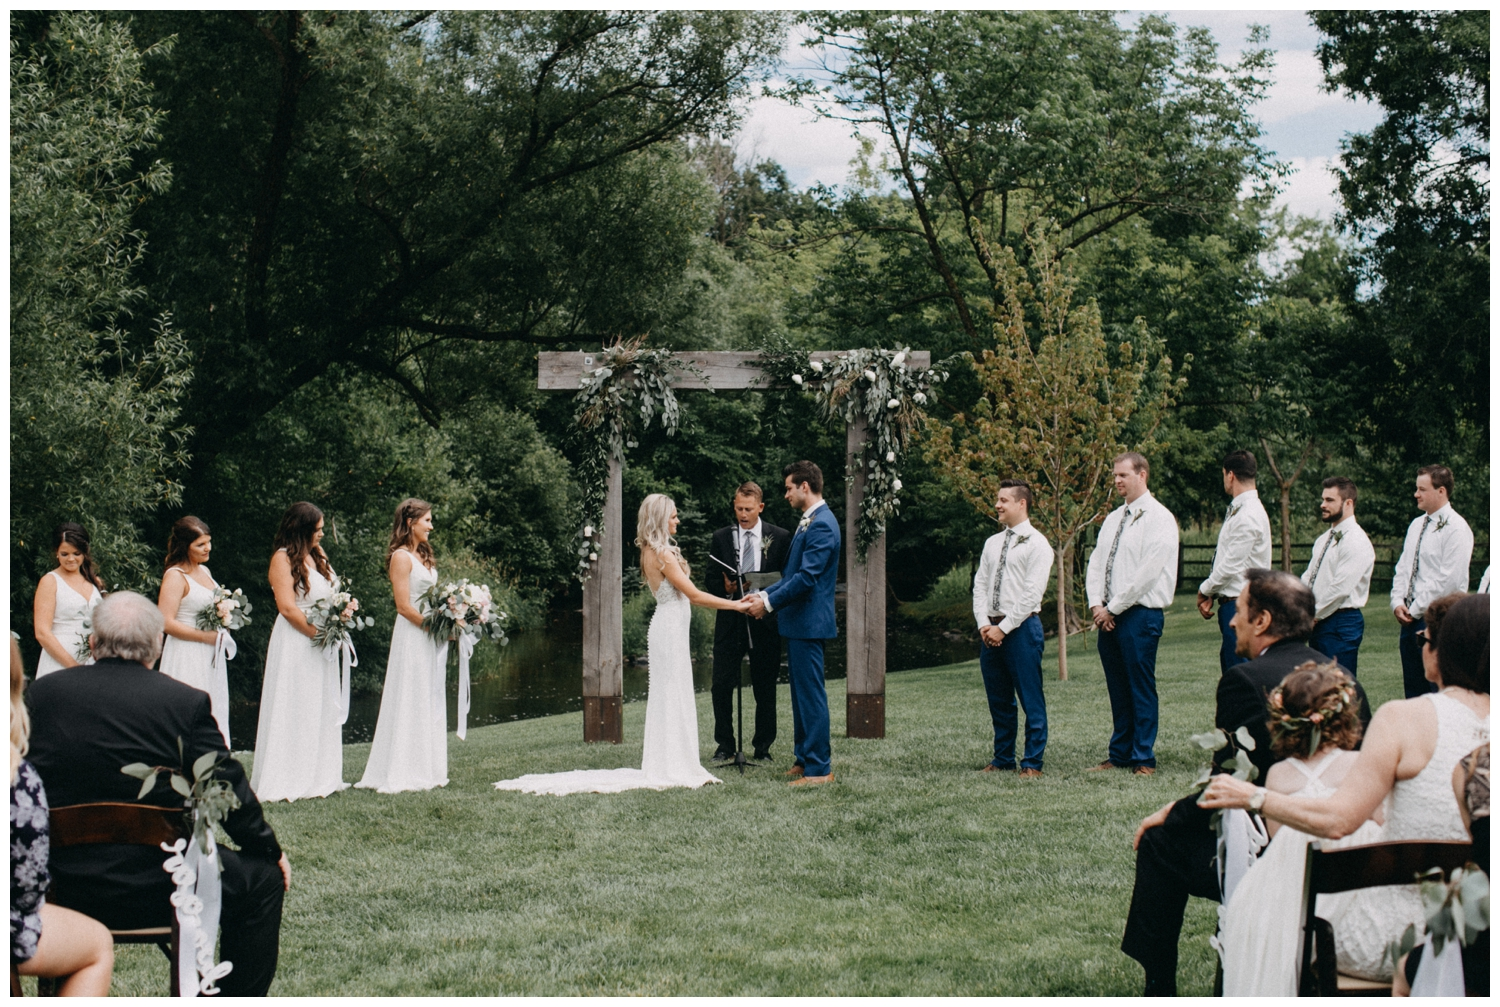 Creekside Farm outdoor wedding ceremony